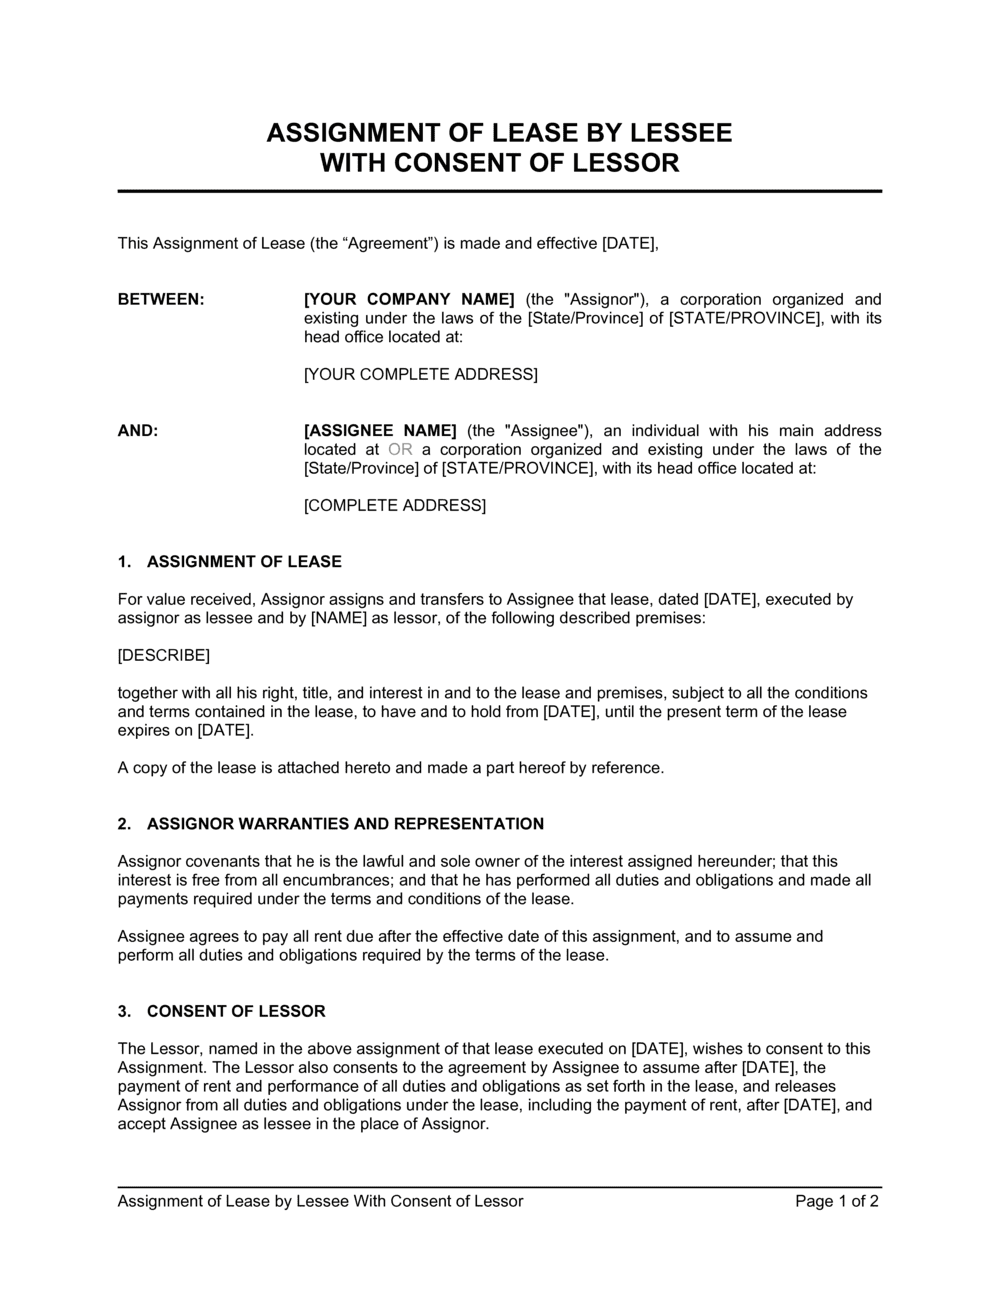 Business-in-a-Box's Assignment of Lease by Lessee With Consent of Lessor Template